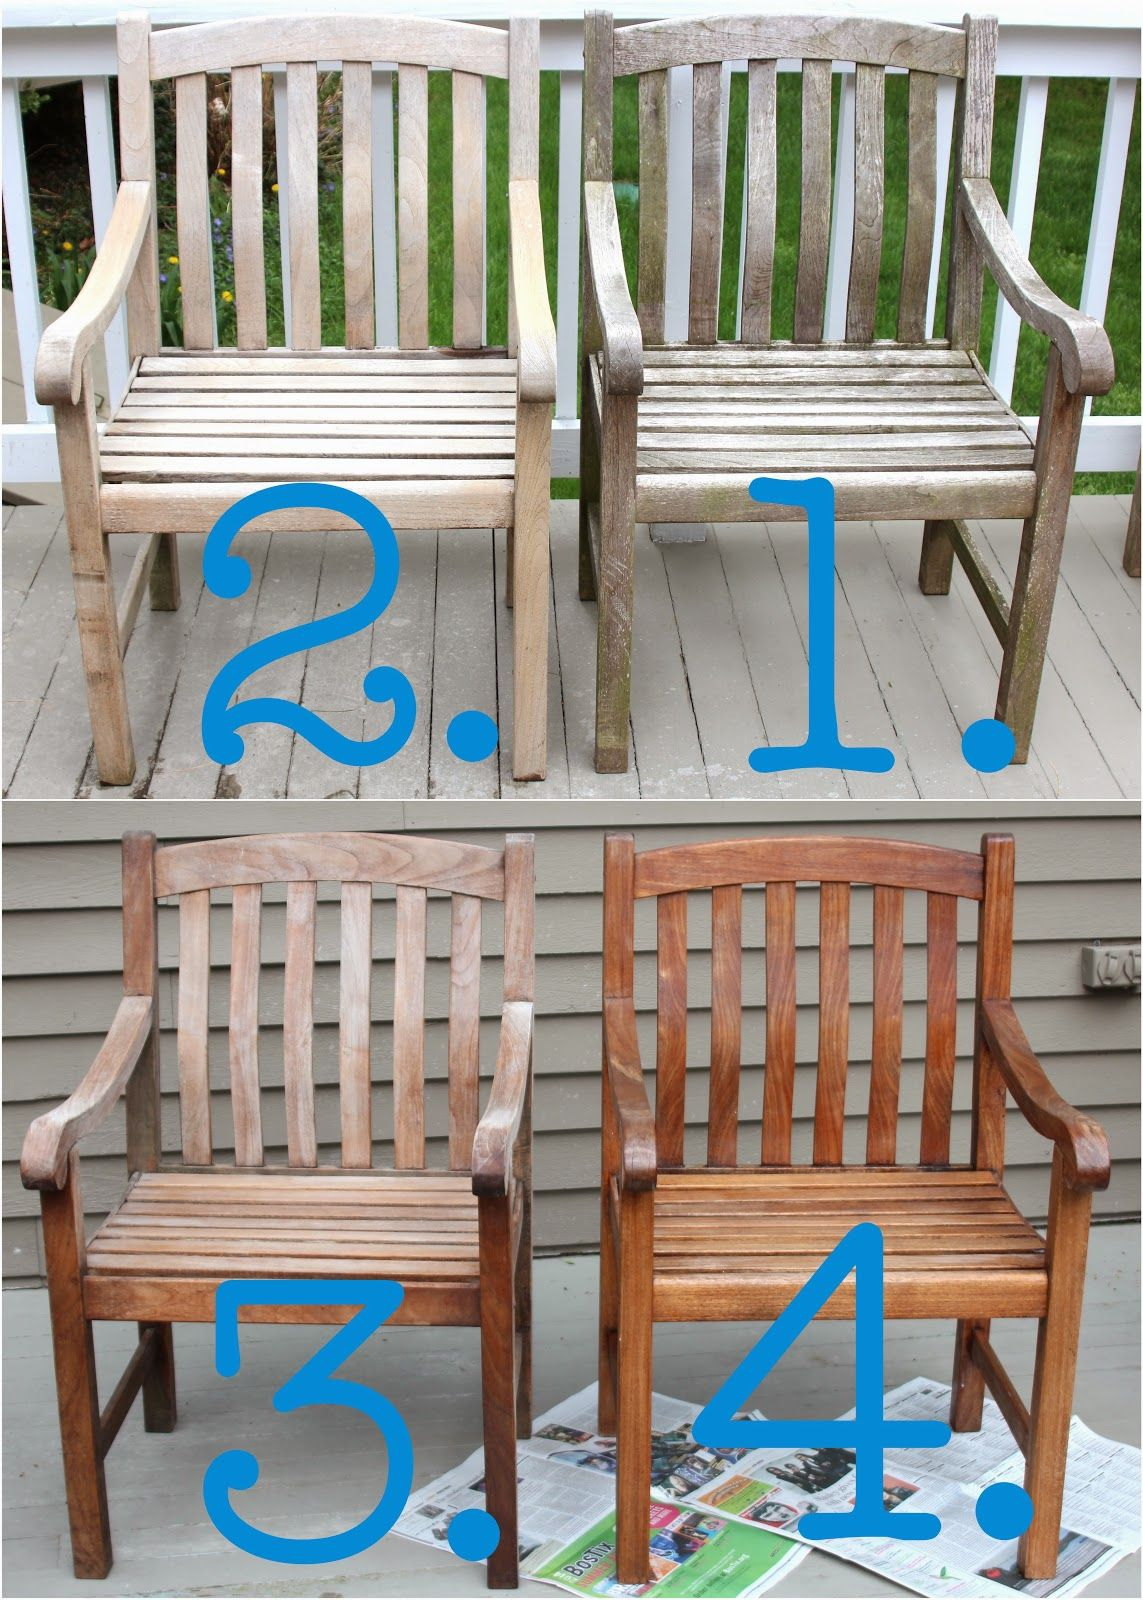 Shine Your Light: Cleaning & Sealing Outdoor Teak Furniture - Cleaning & Sealing Outdoor Teak Furniture Teak Furniture, Teak And